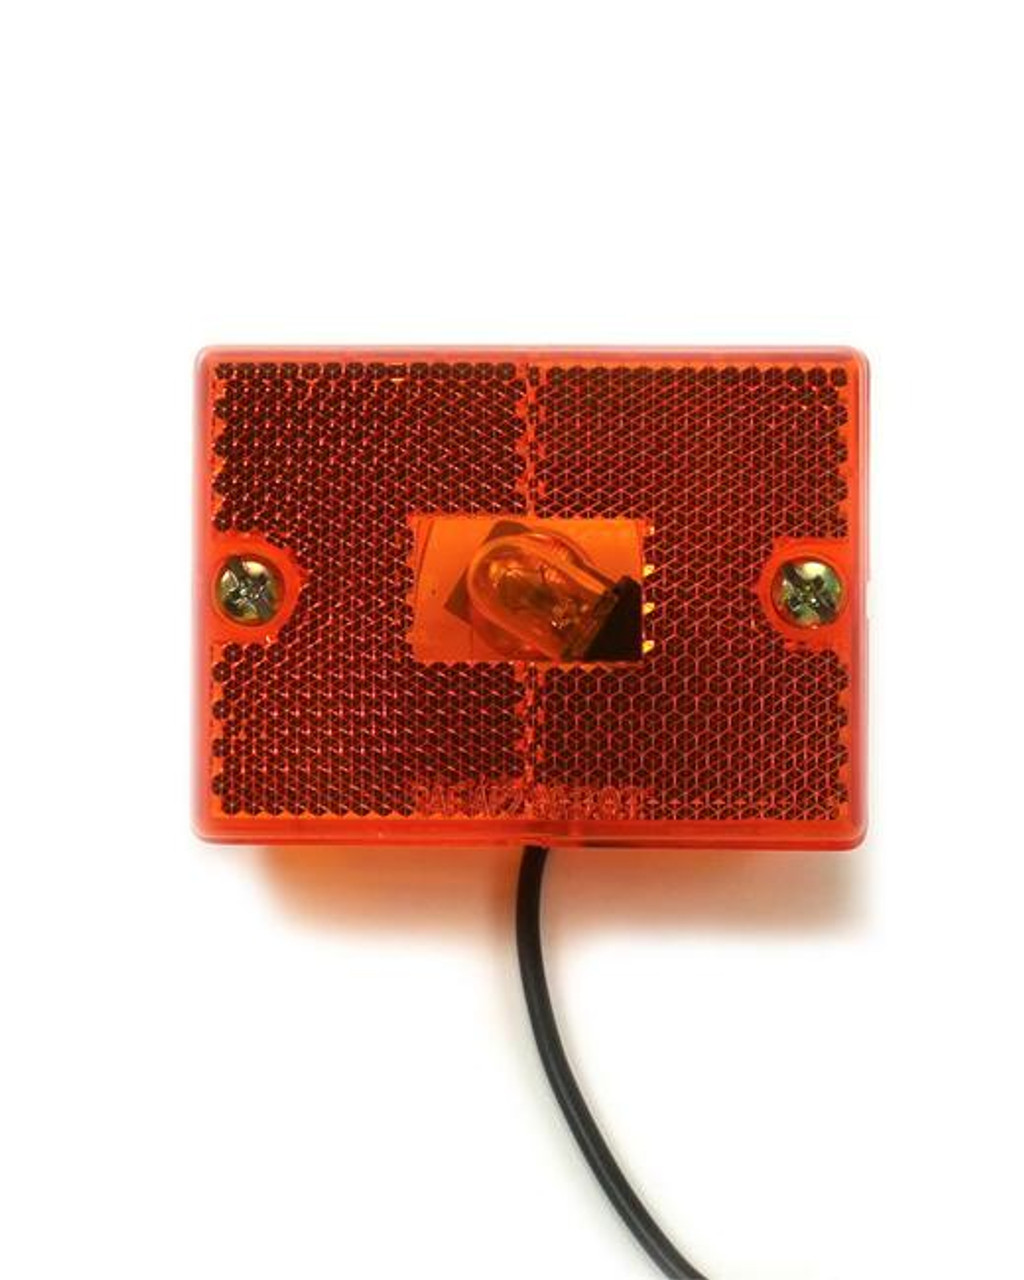 Amber stud mounted sidemarker w/ lens and housing